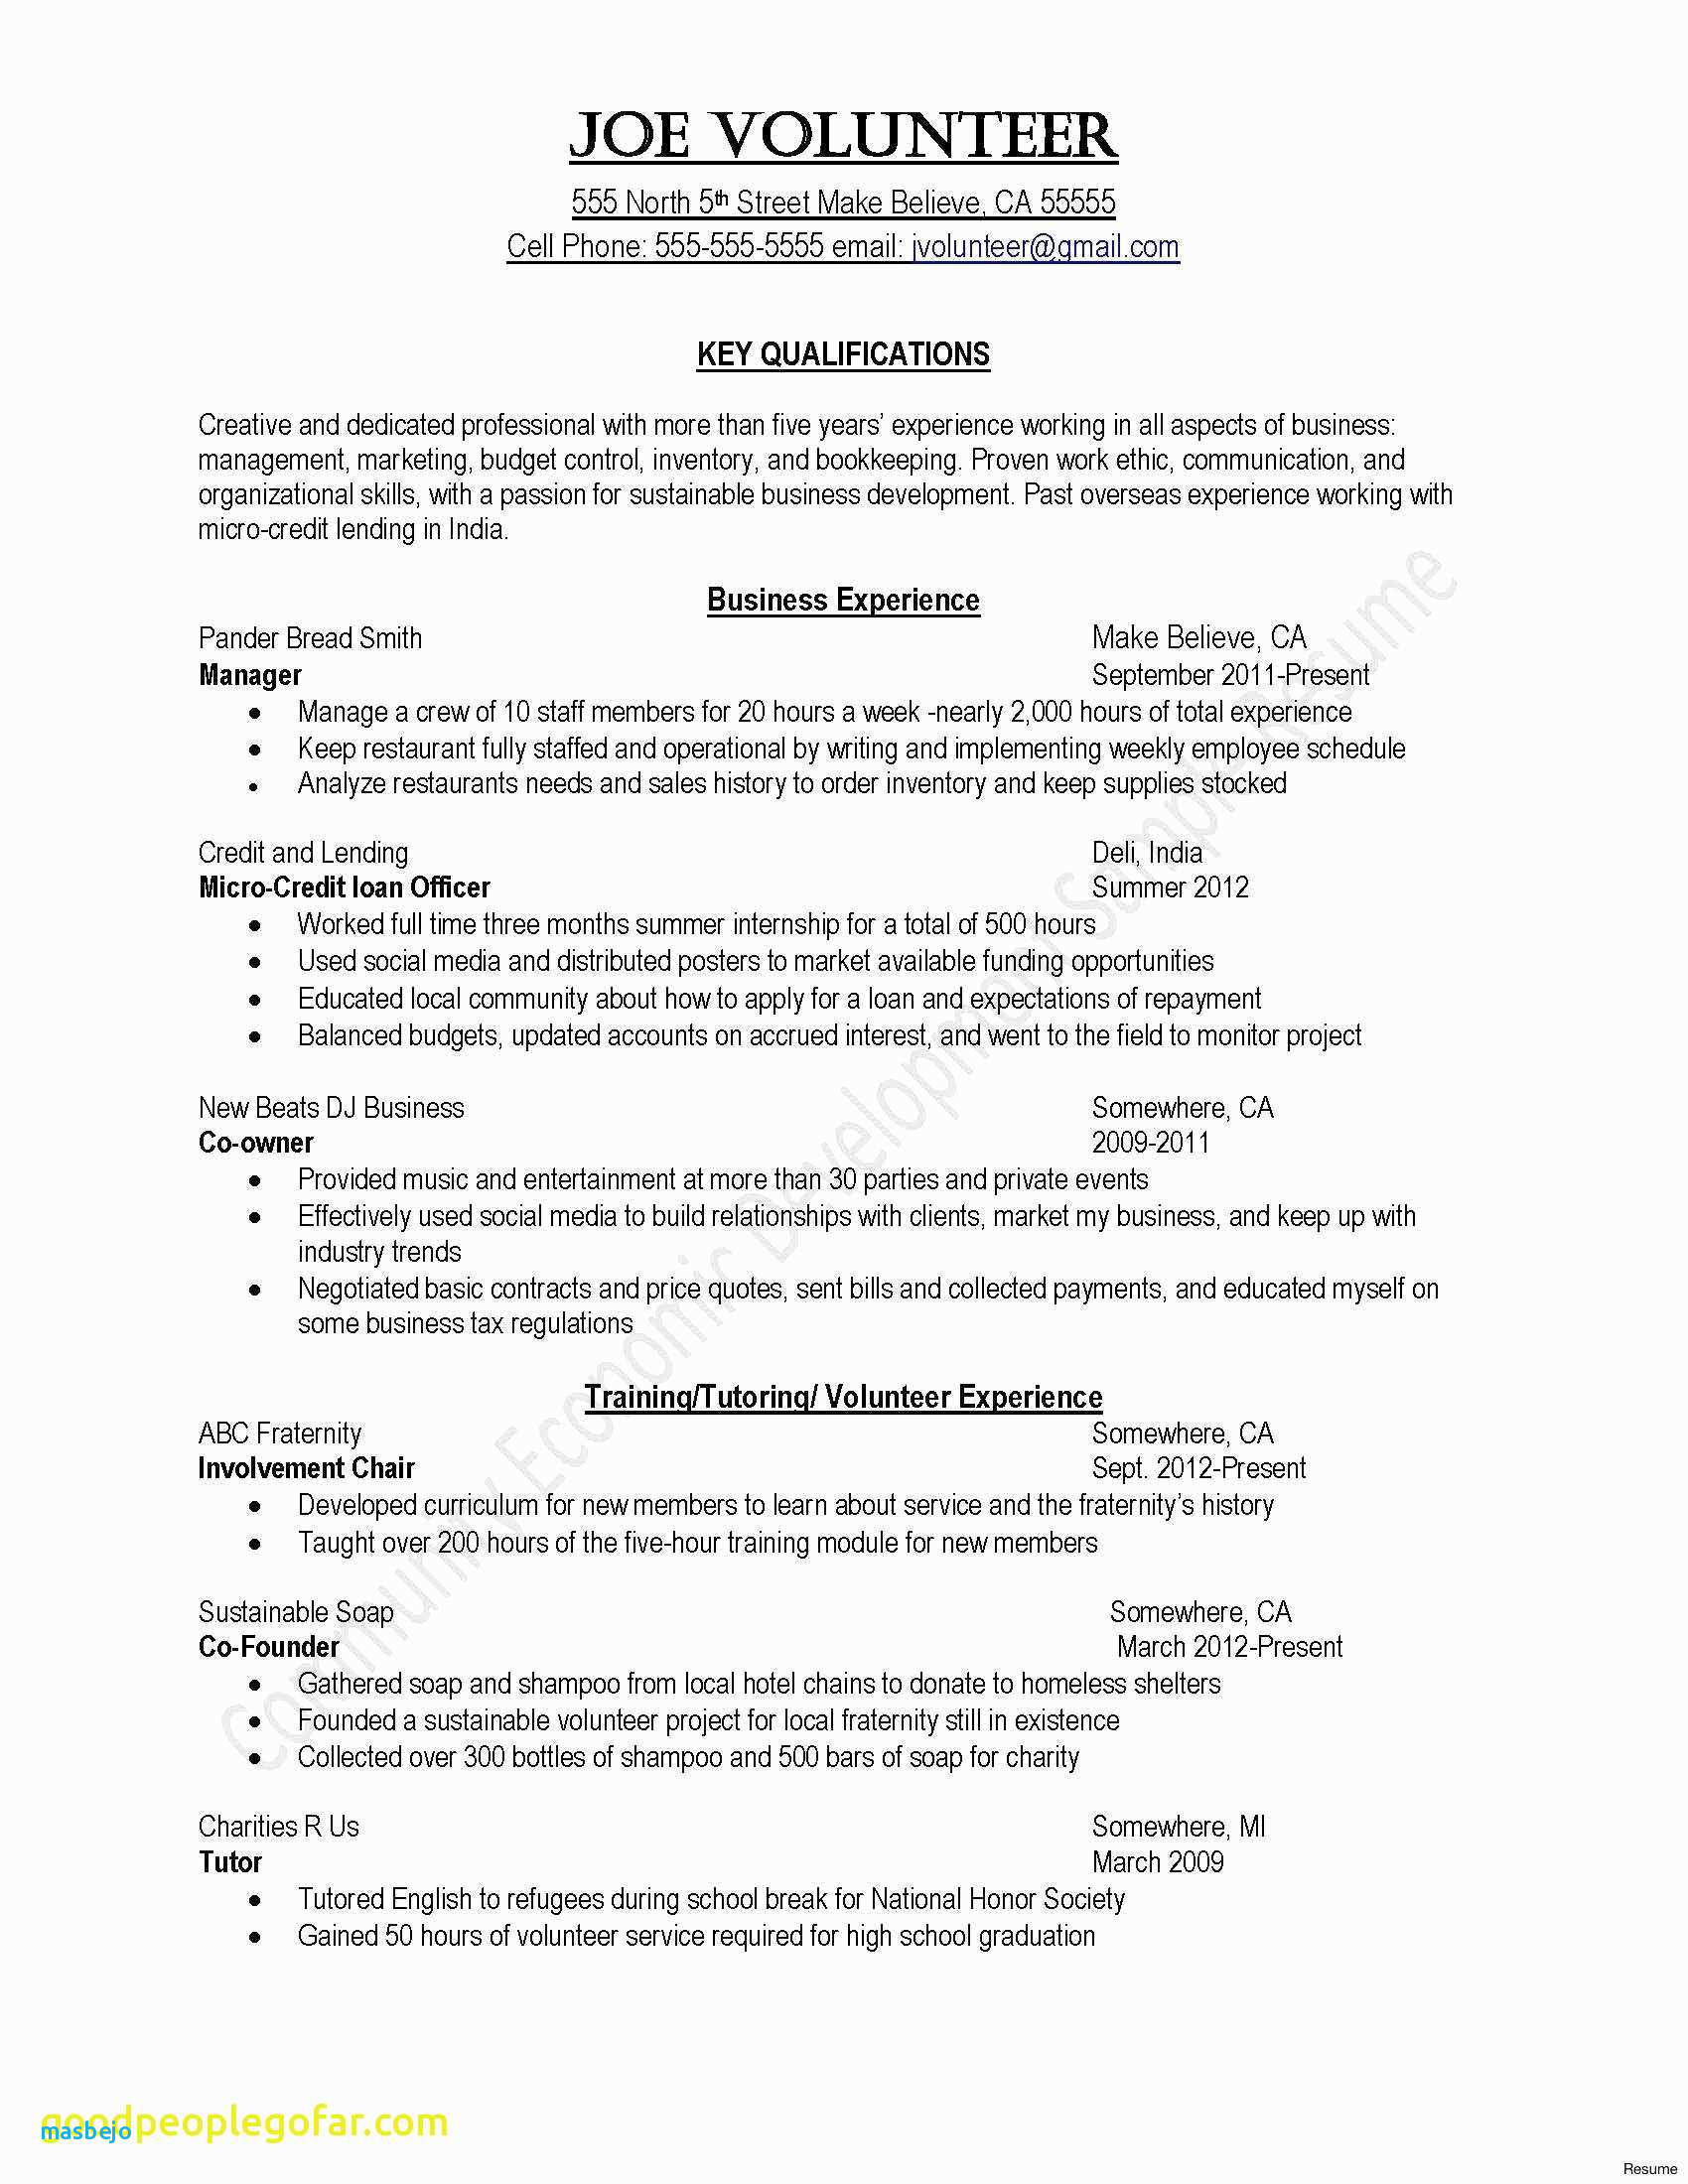 dance resume template free example-Dance Resume Template Grapher Resume Sample Beautiful Resume Quotes 0d Aurelianmg 2-o